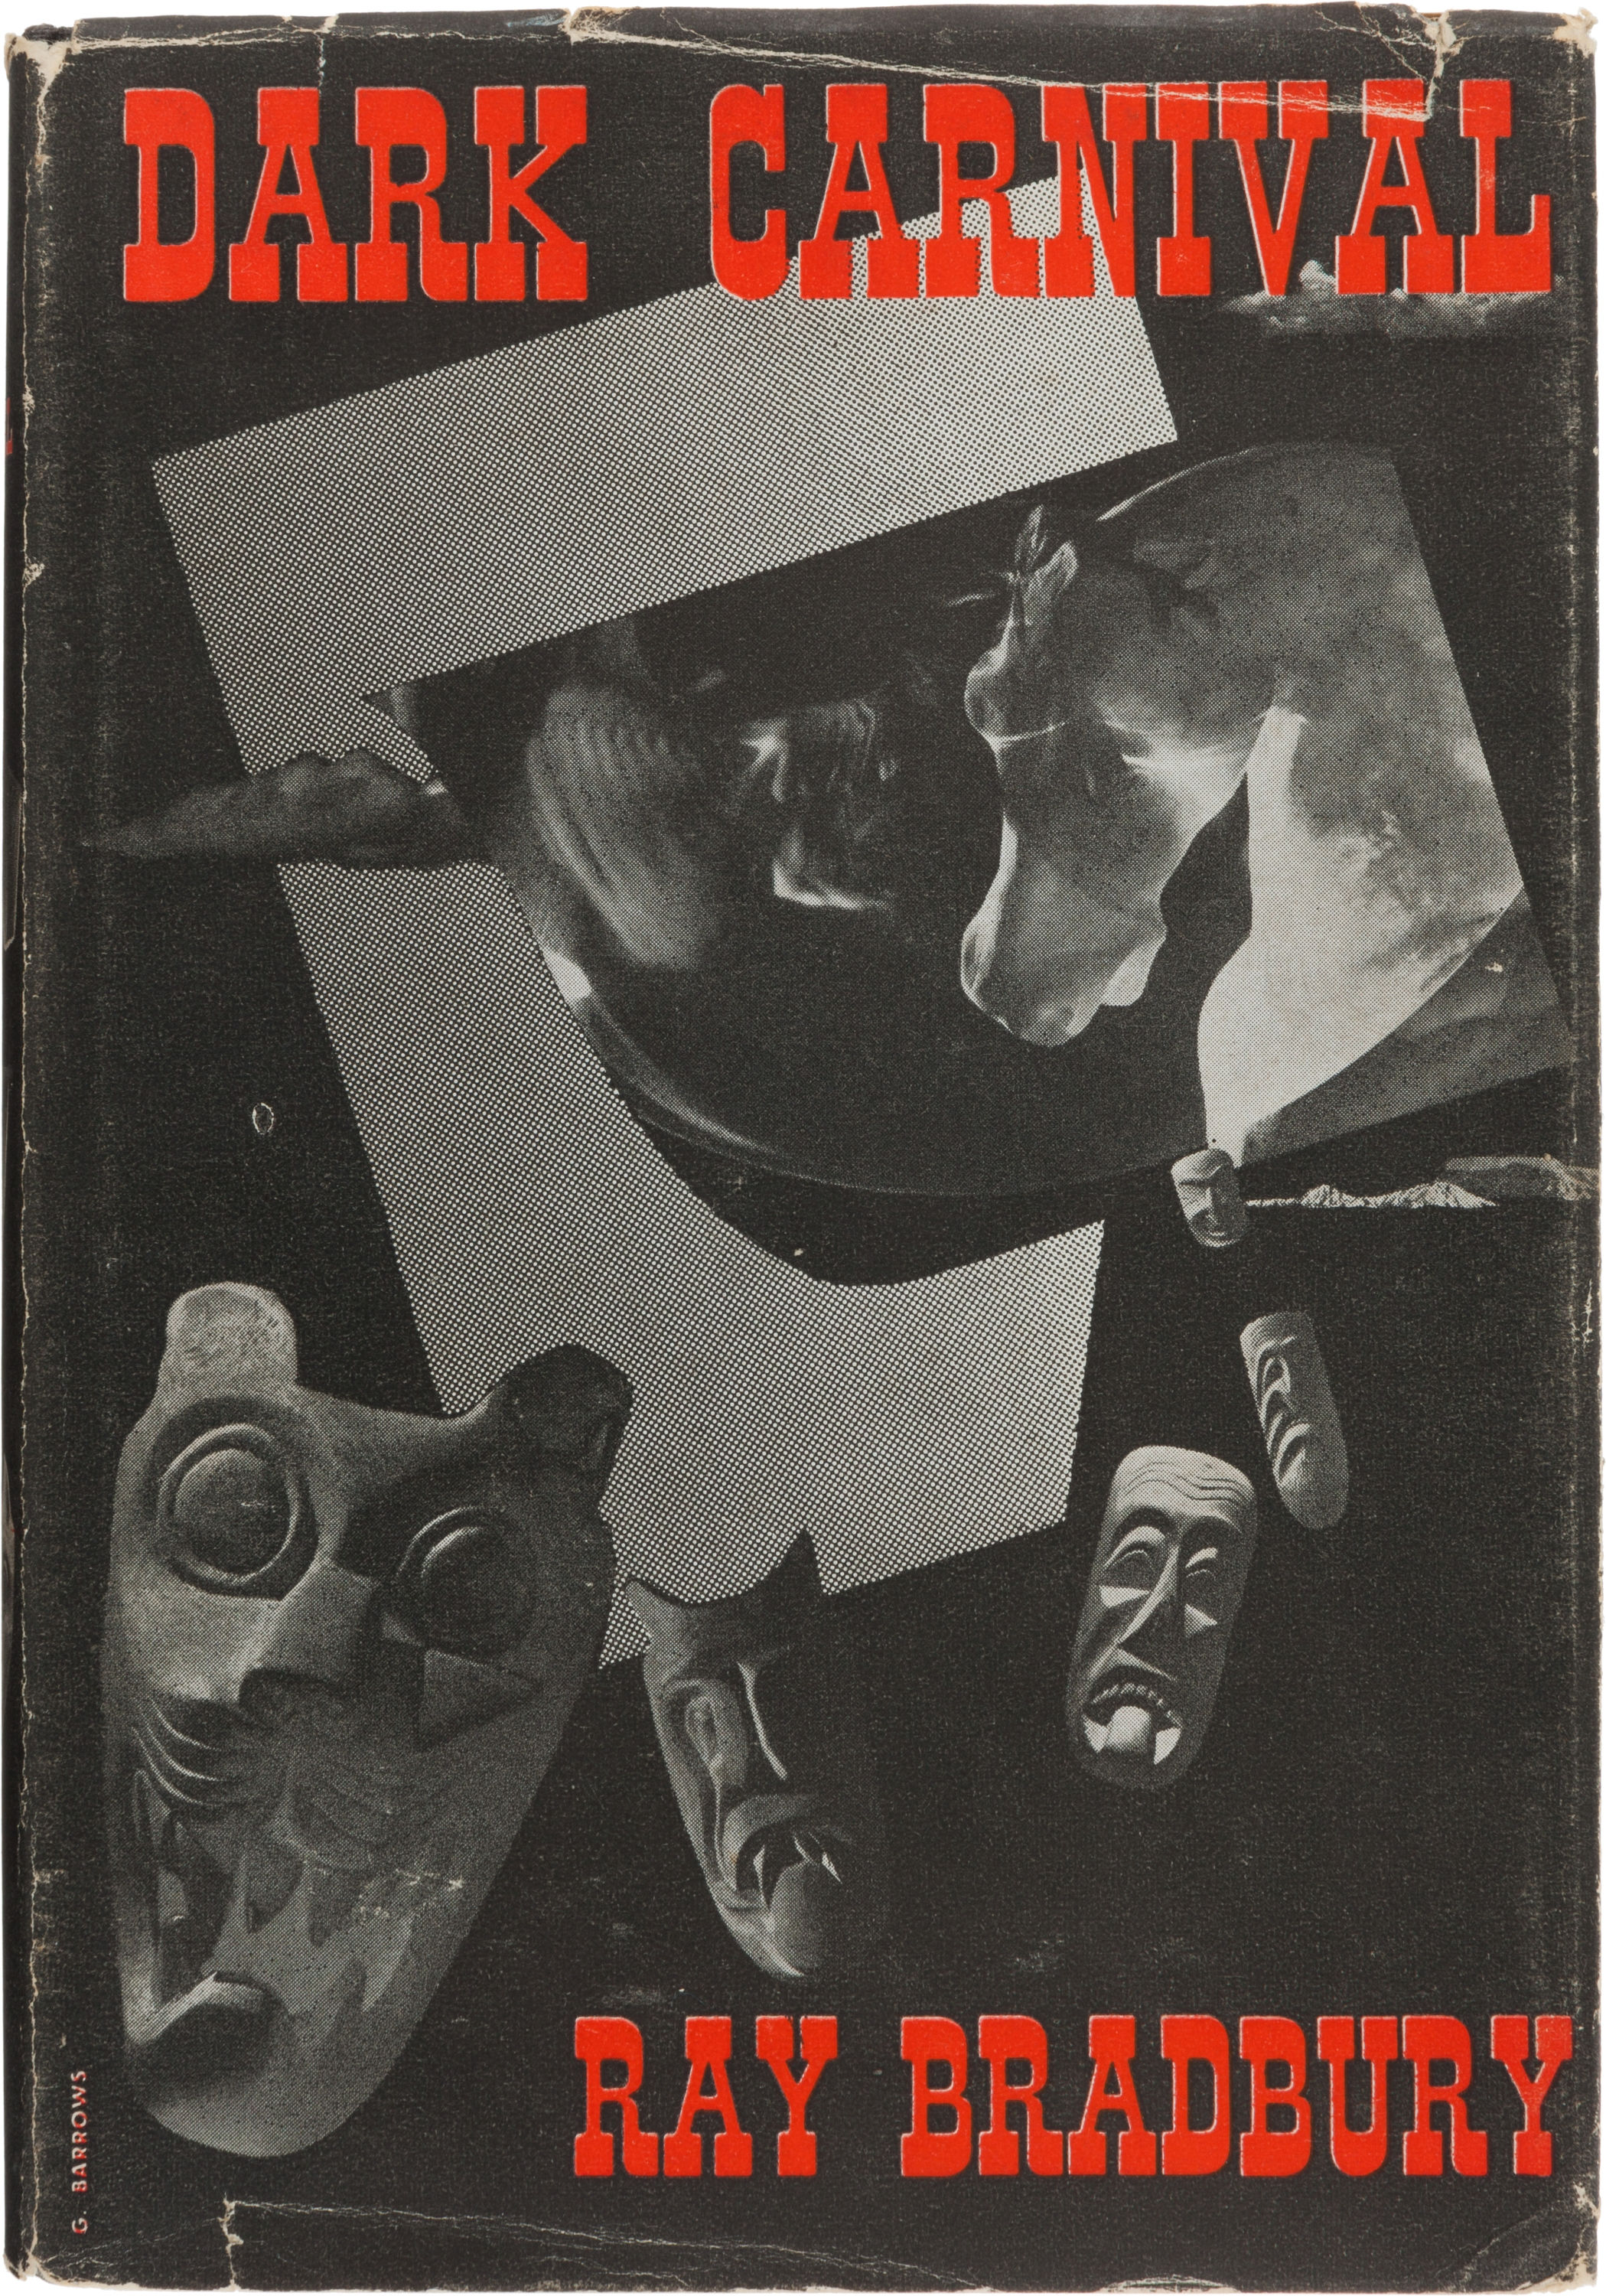 Dark Carnival. Sauk City: Arkham House, 1947. First edition of the author's first book. Dust jacket by George Barrows.